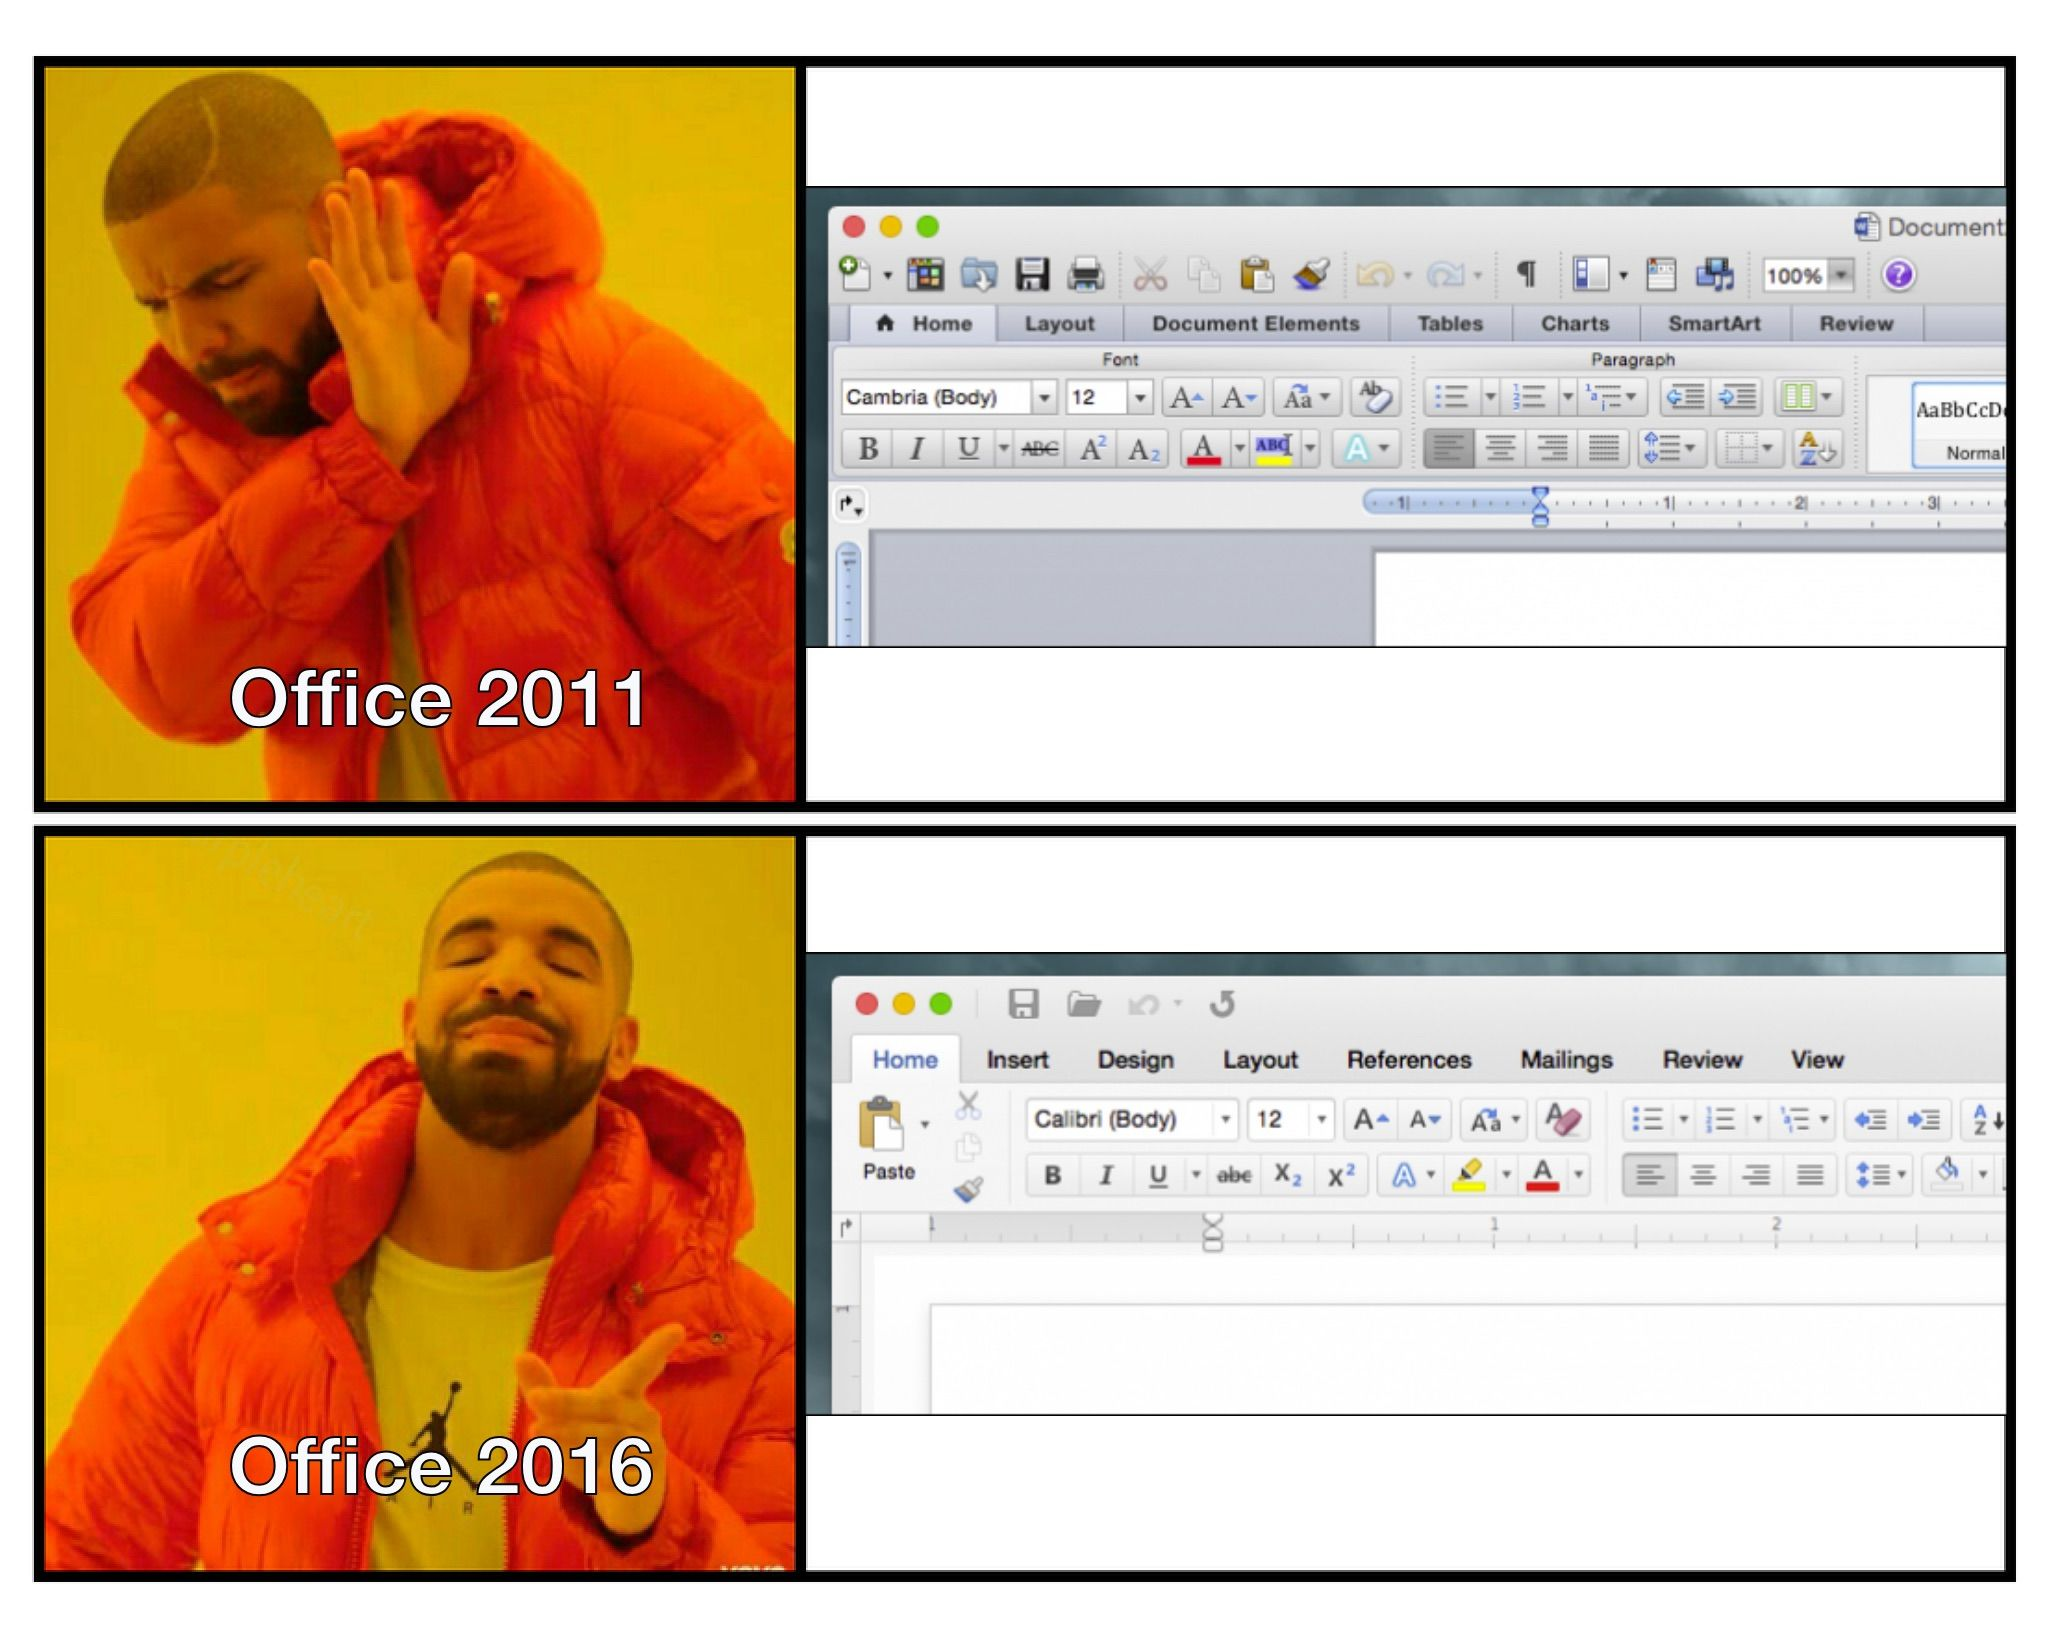 Office 2016 is thoroughly Mac aesthetic. How to